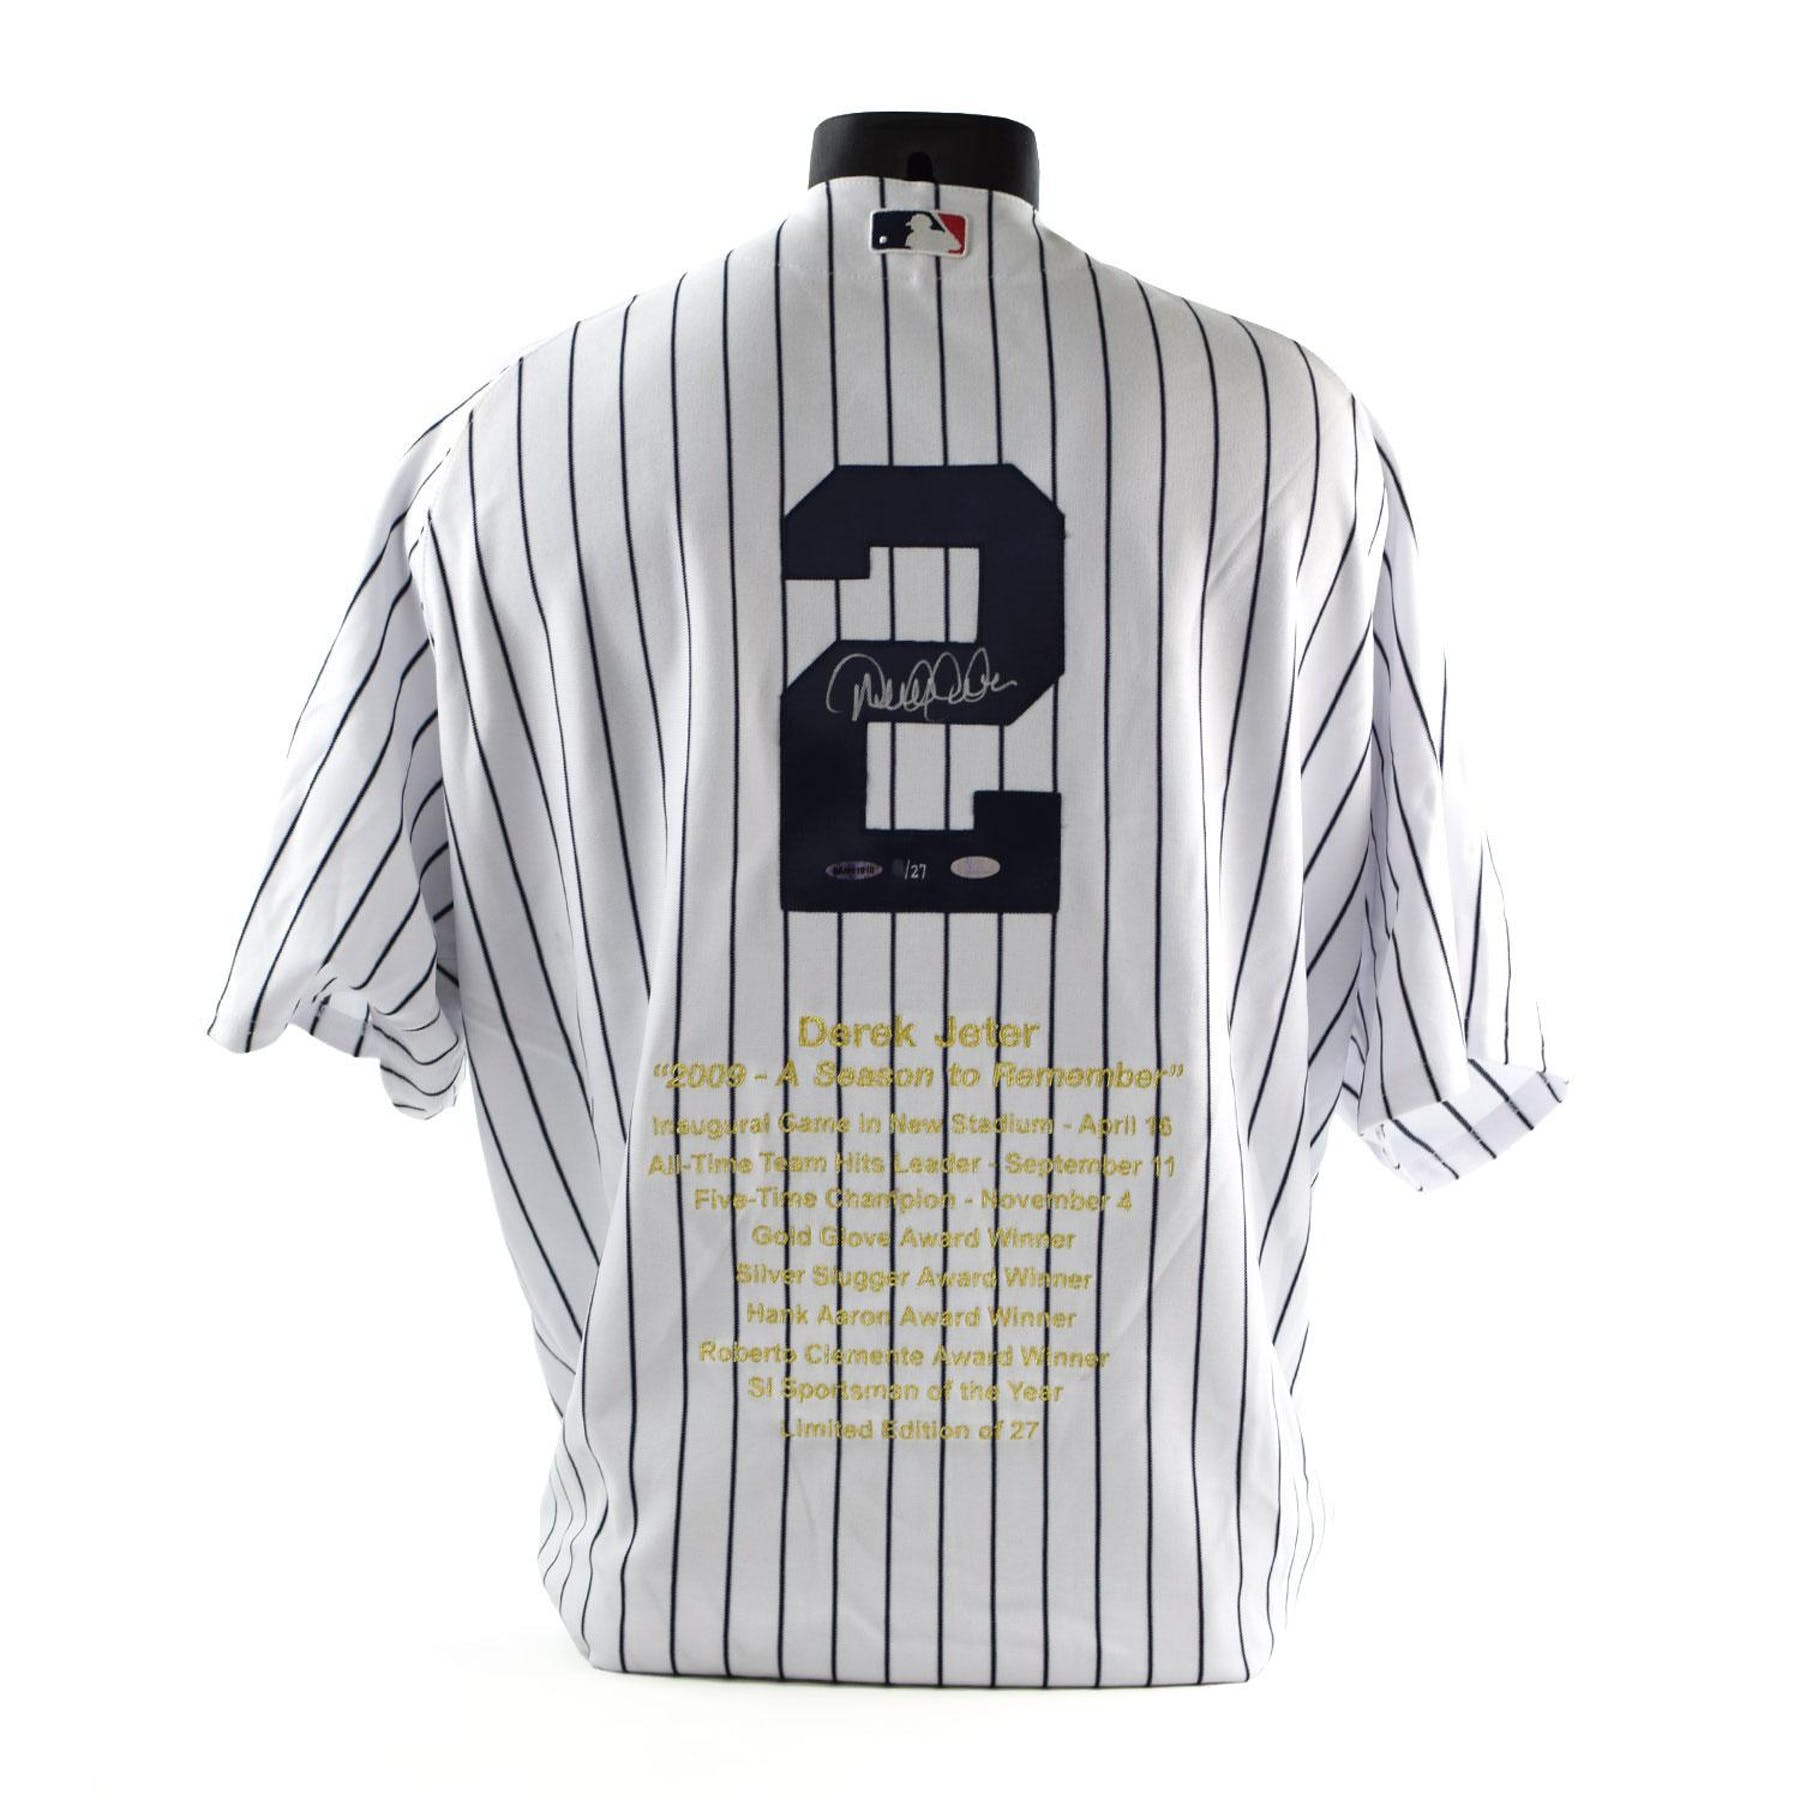 reputable site 28691 aea32 Derek Jeter UDA